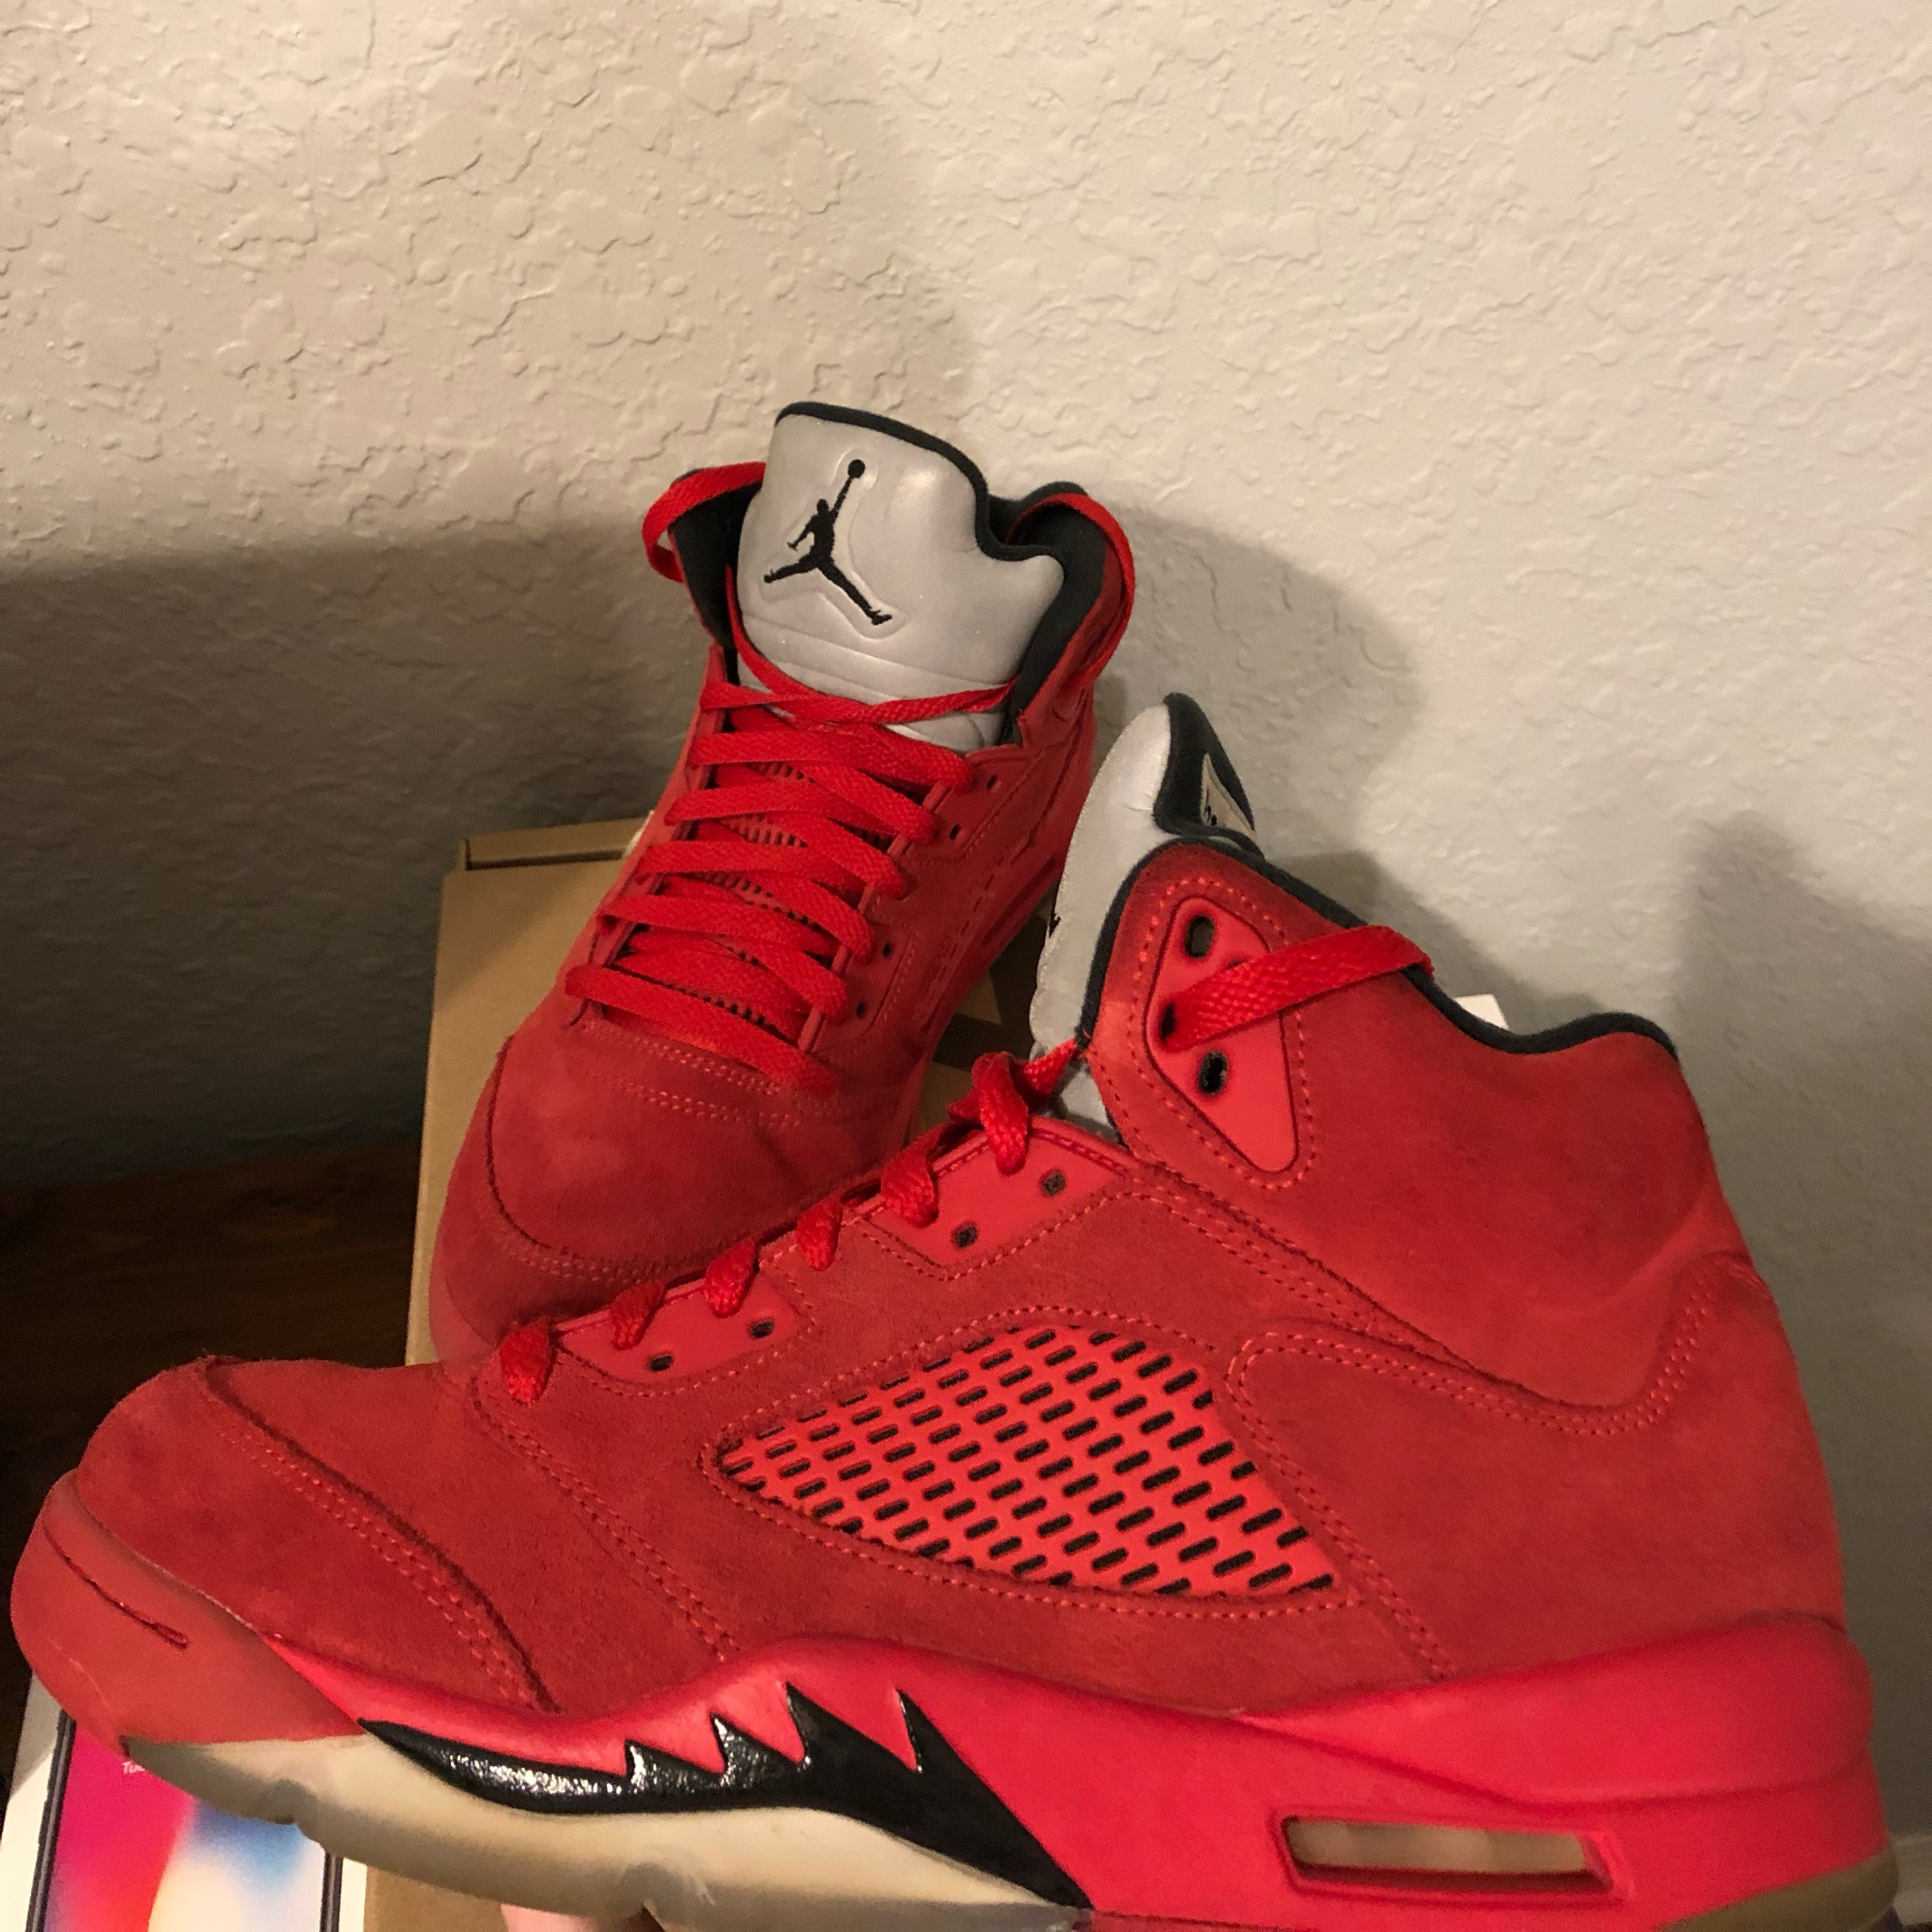 922fa88c8b79 Jordan 5 Red Suede Size 9.5 Used No Box